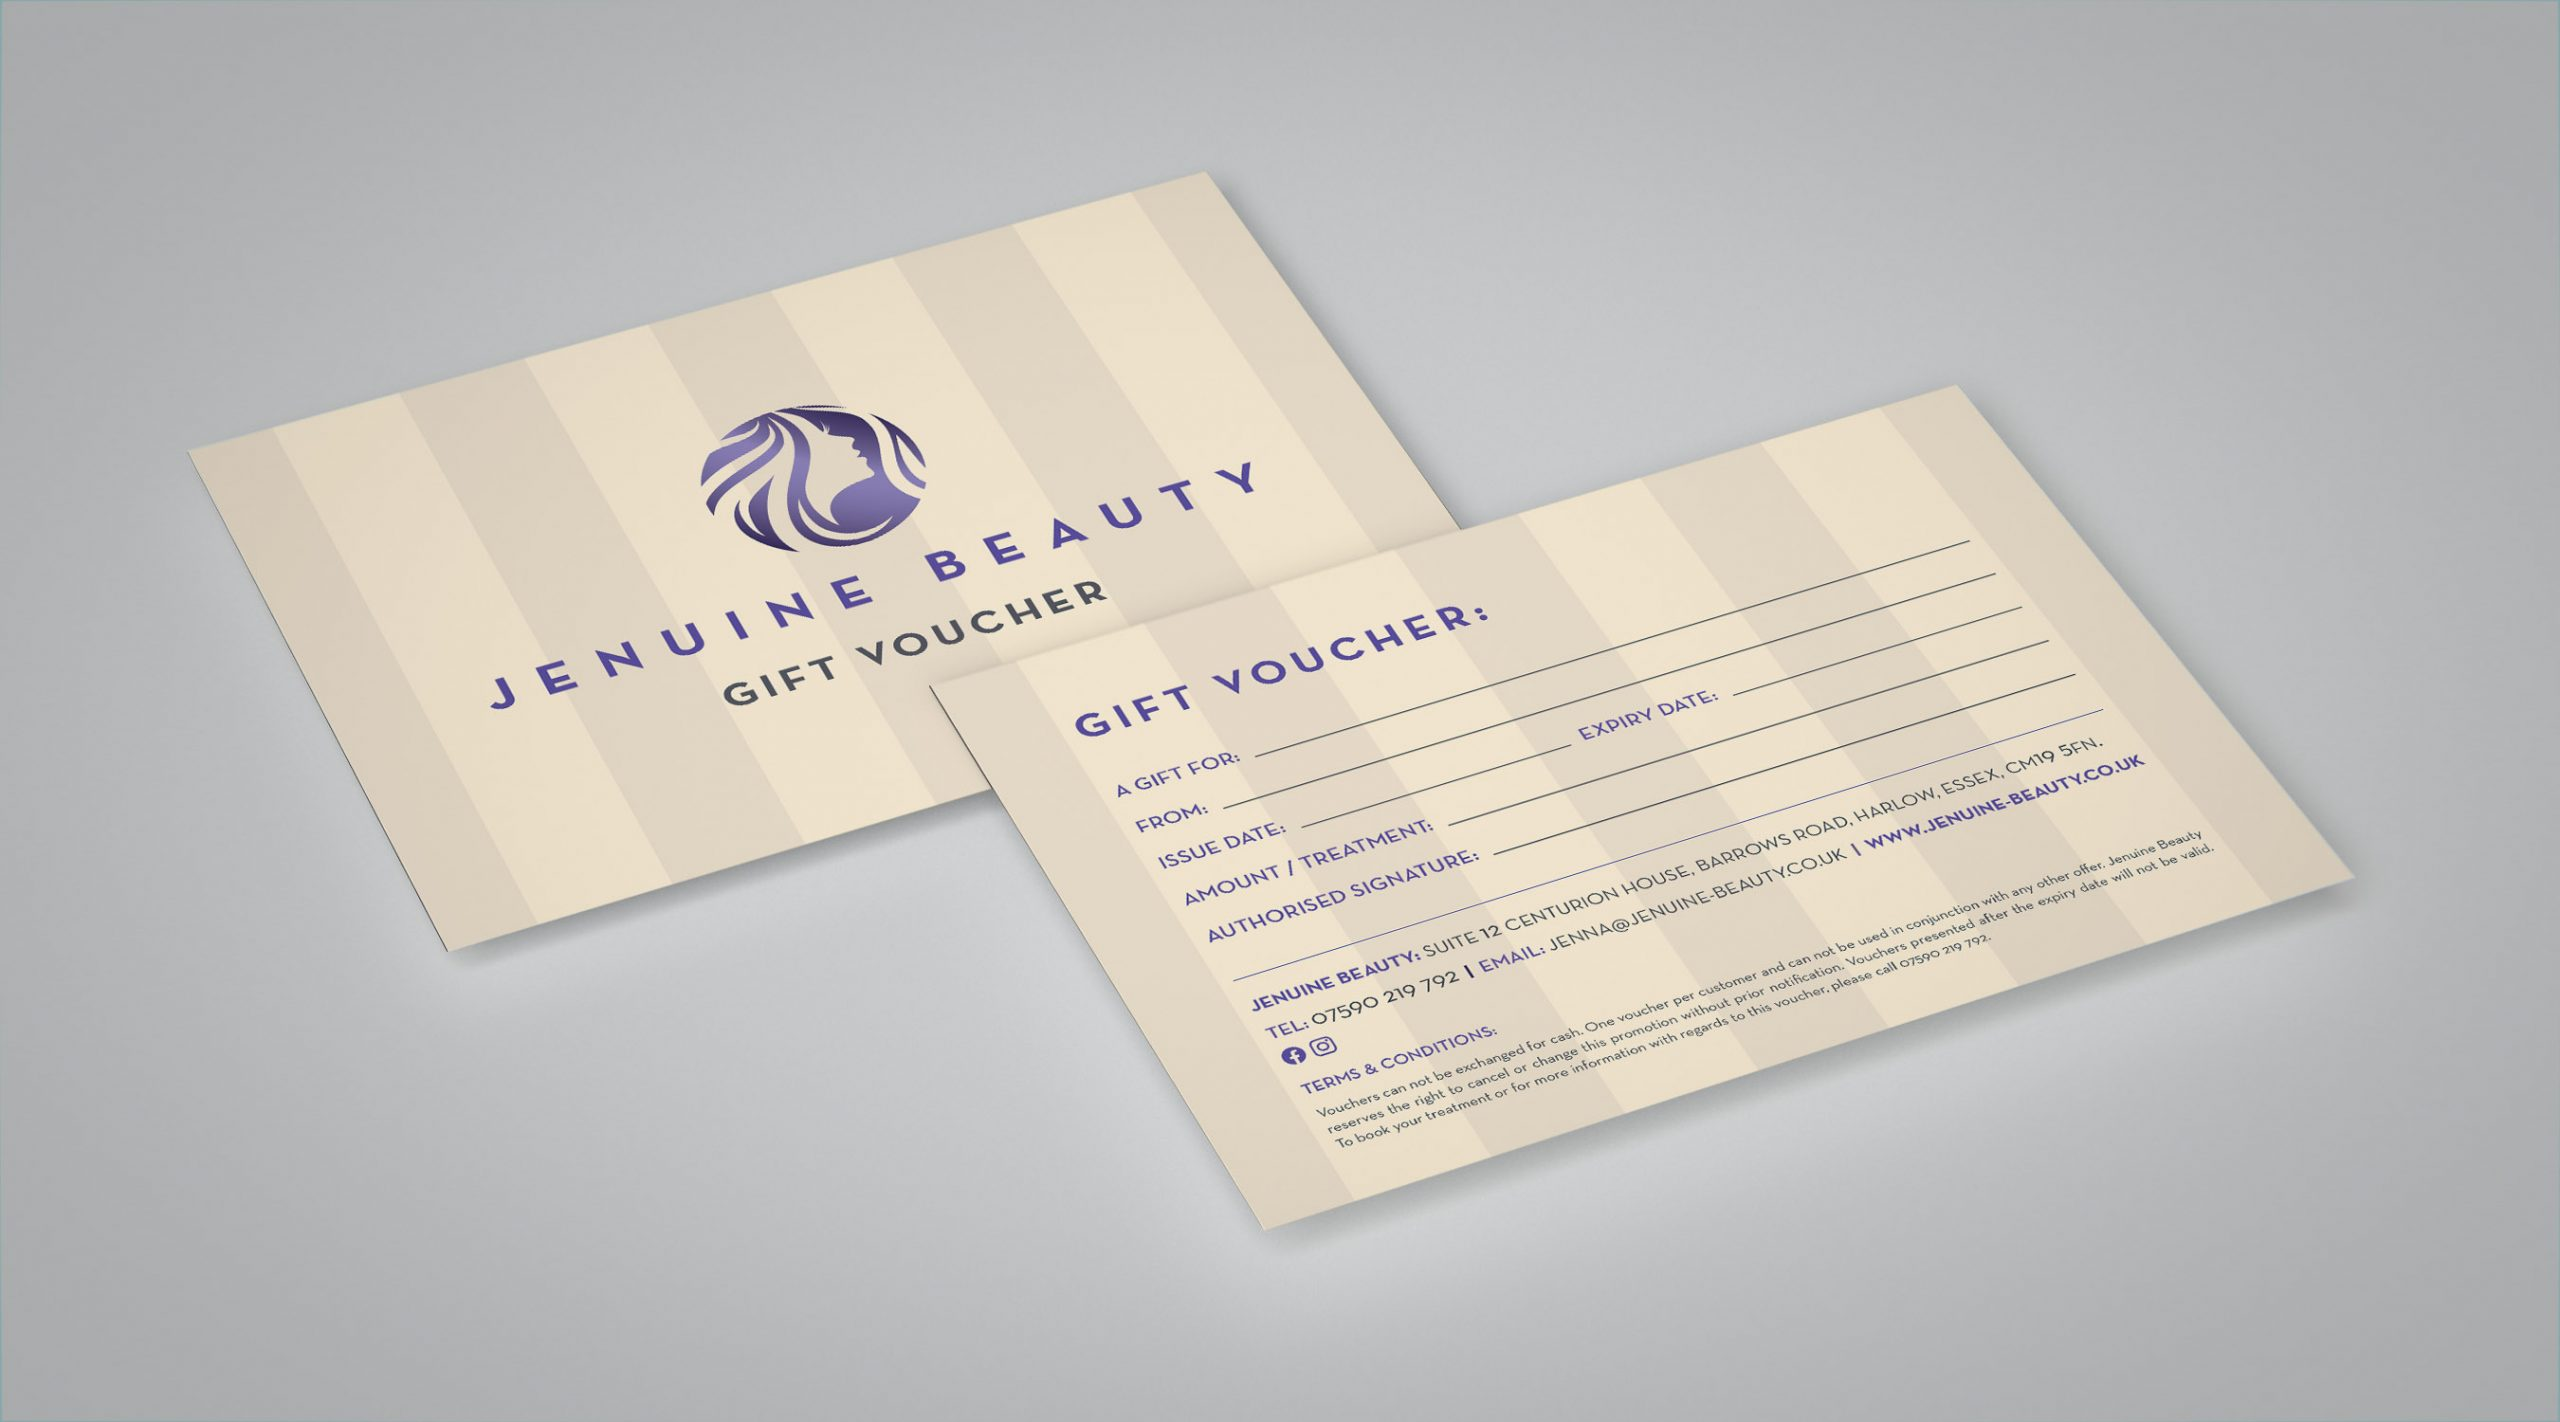 Jenuine-Beauty-A6-Gift-Voucher